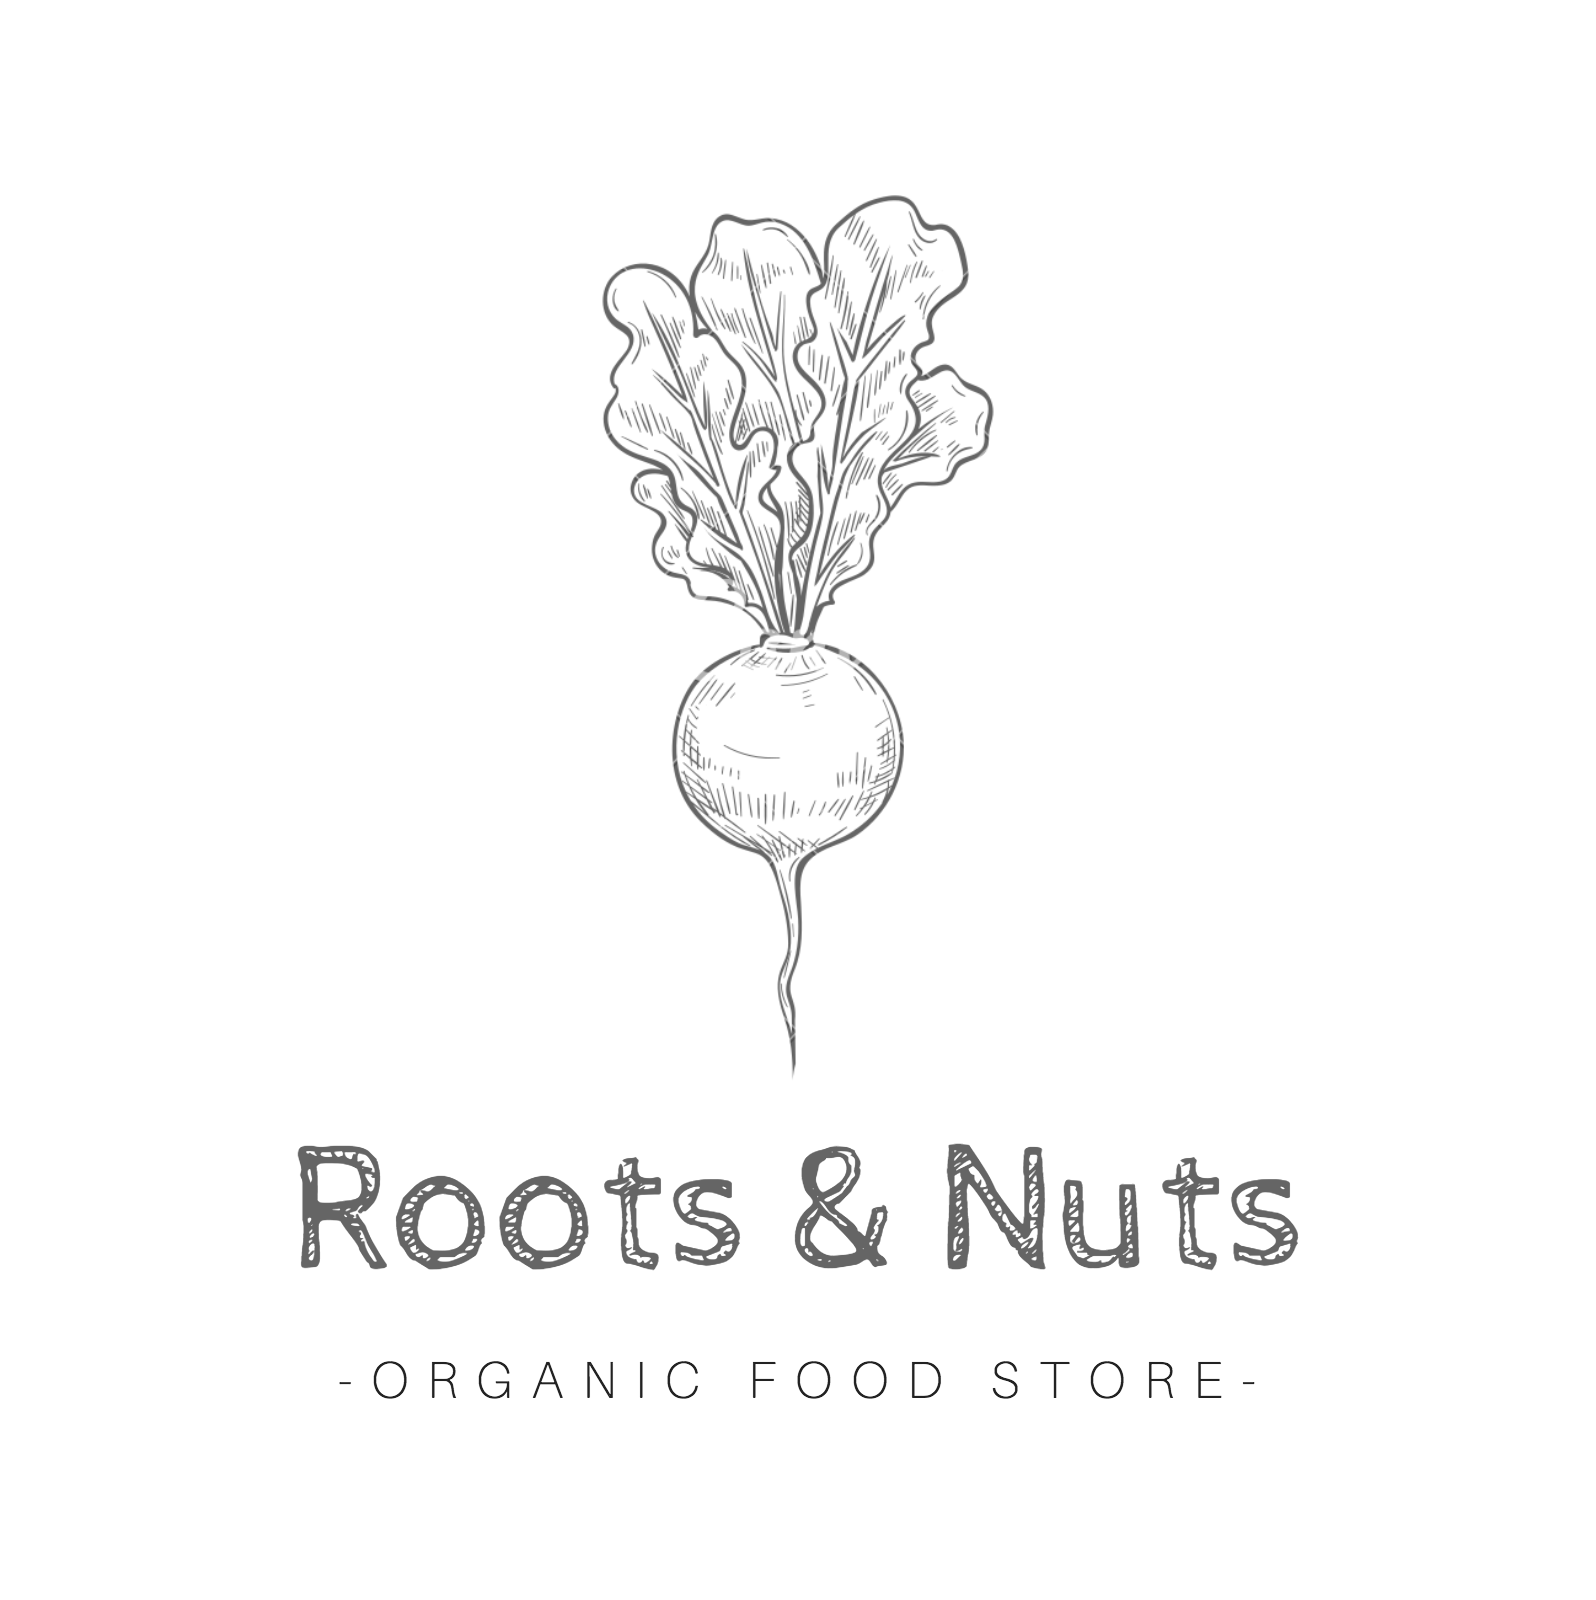 Roots & Nuts